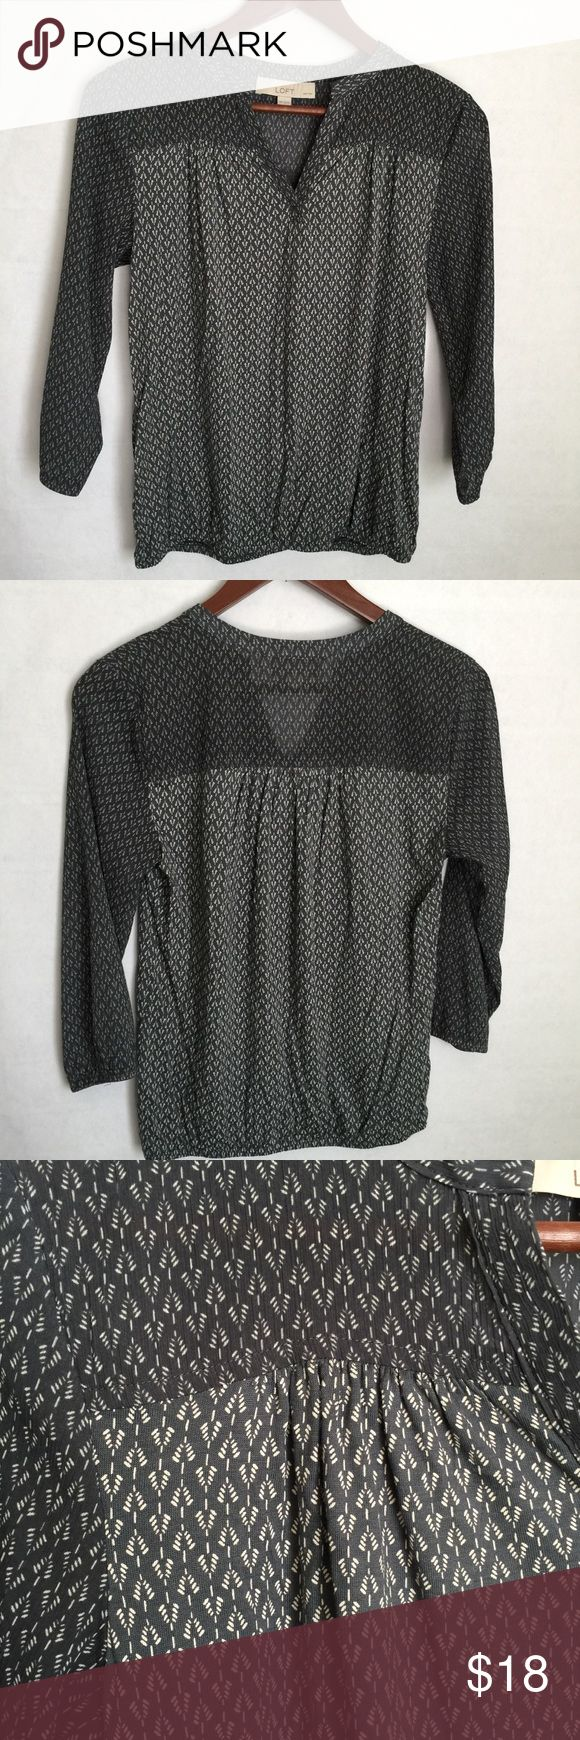 ✨NEW Listin✨Loft petite blouse Ann Taylor Loft blouse with an alternating repetitive all-over pattern. Charcoal grey sleeves and front & back yoke with medium grey body. V-neckline. Size is XS petite. Not interested in trades. LOFT Tops Blouses